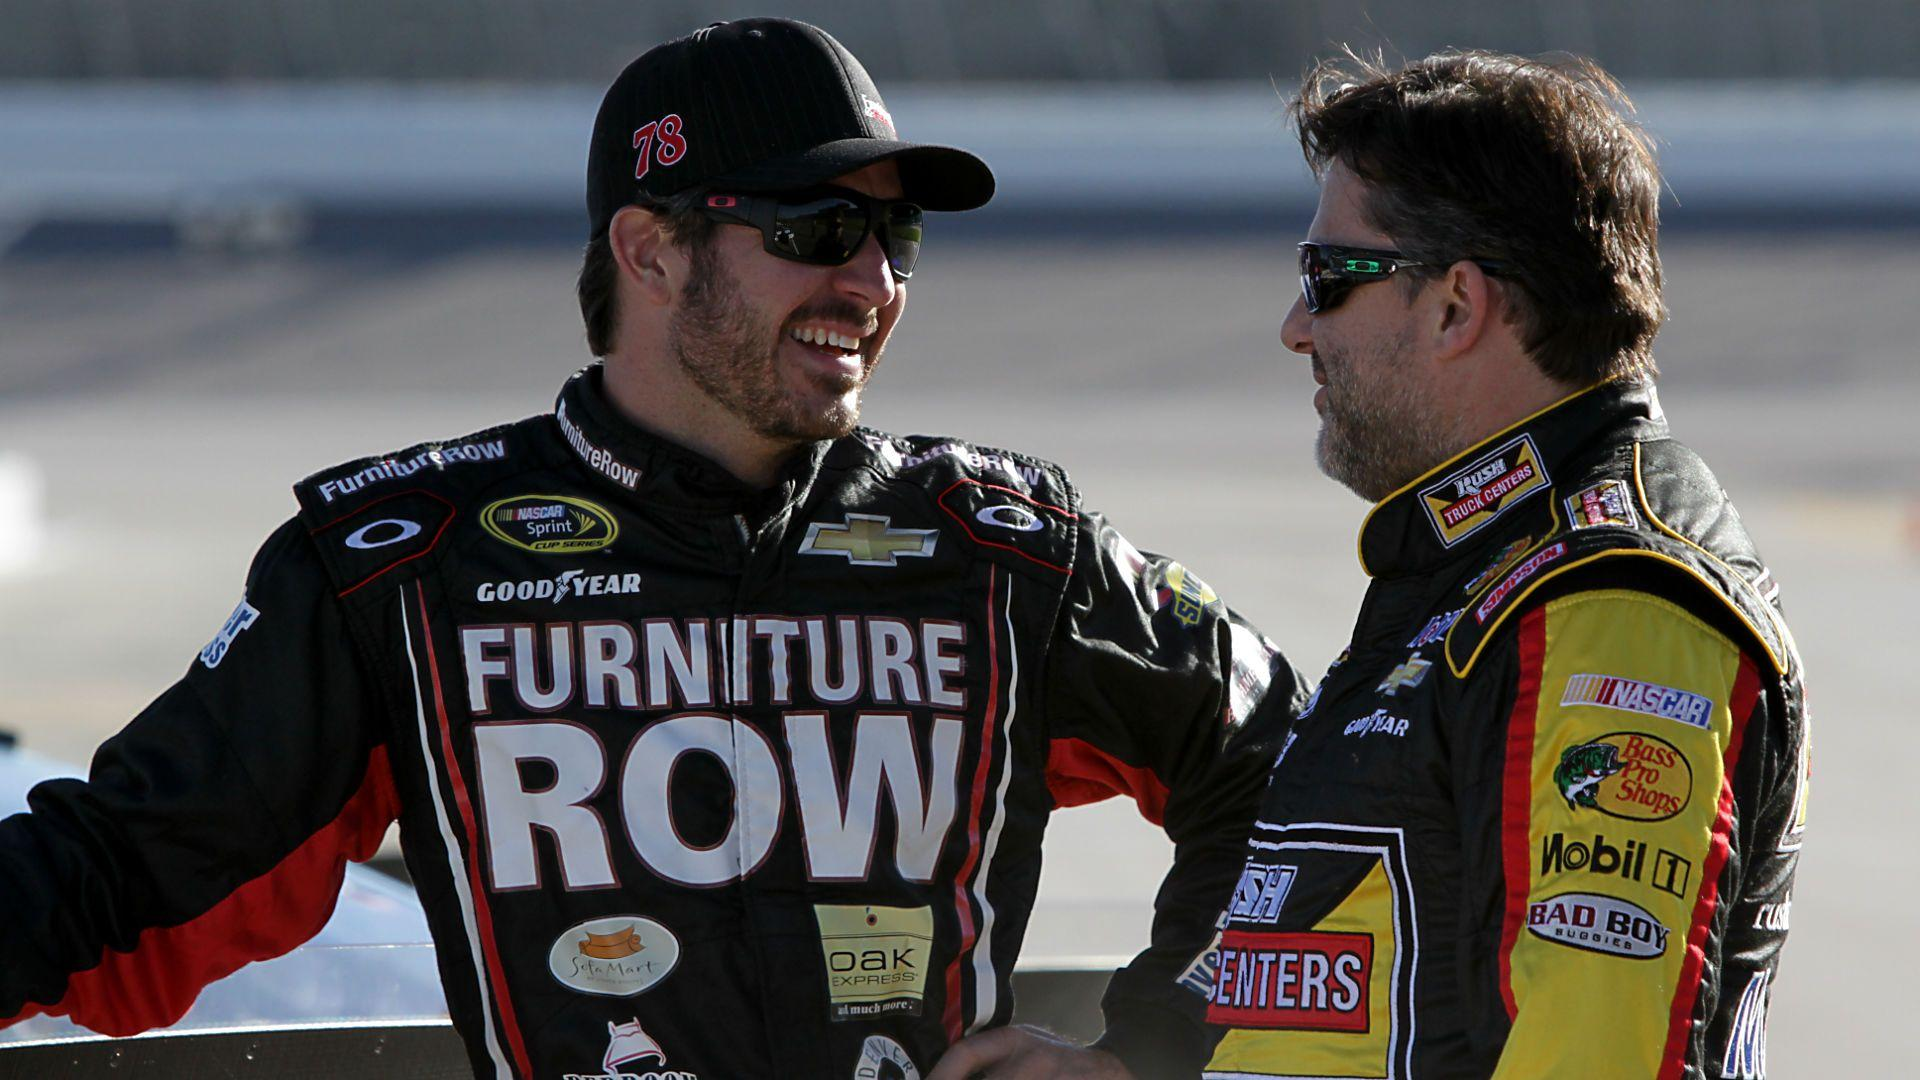 Martin Truex Jr. says Tony Stewart apologized for going off on him